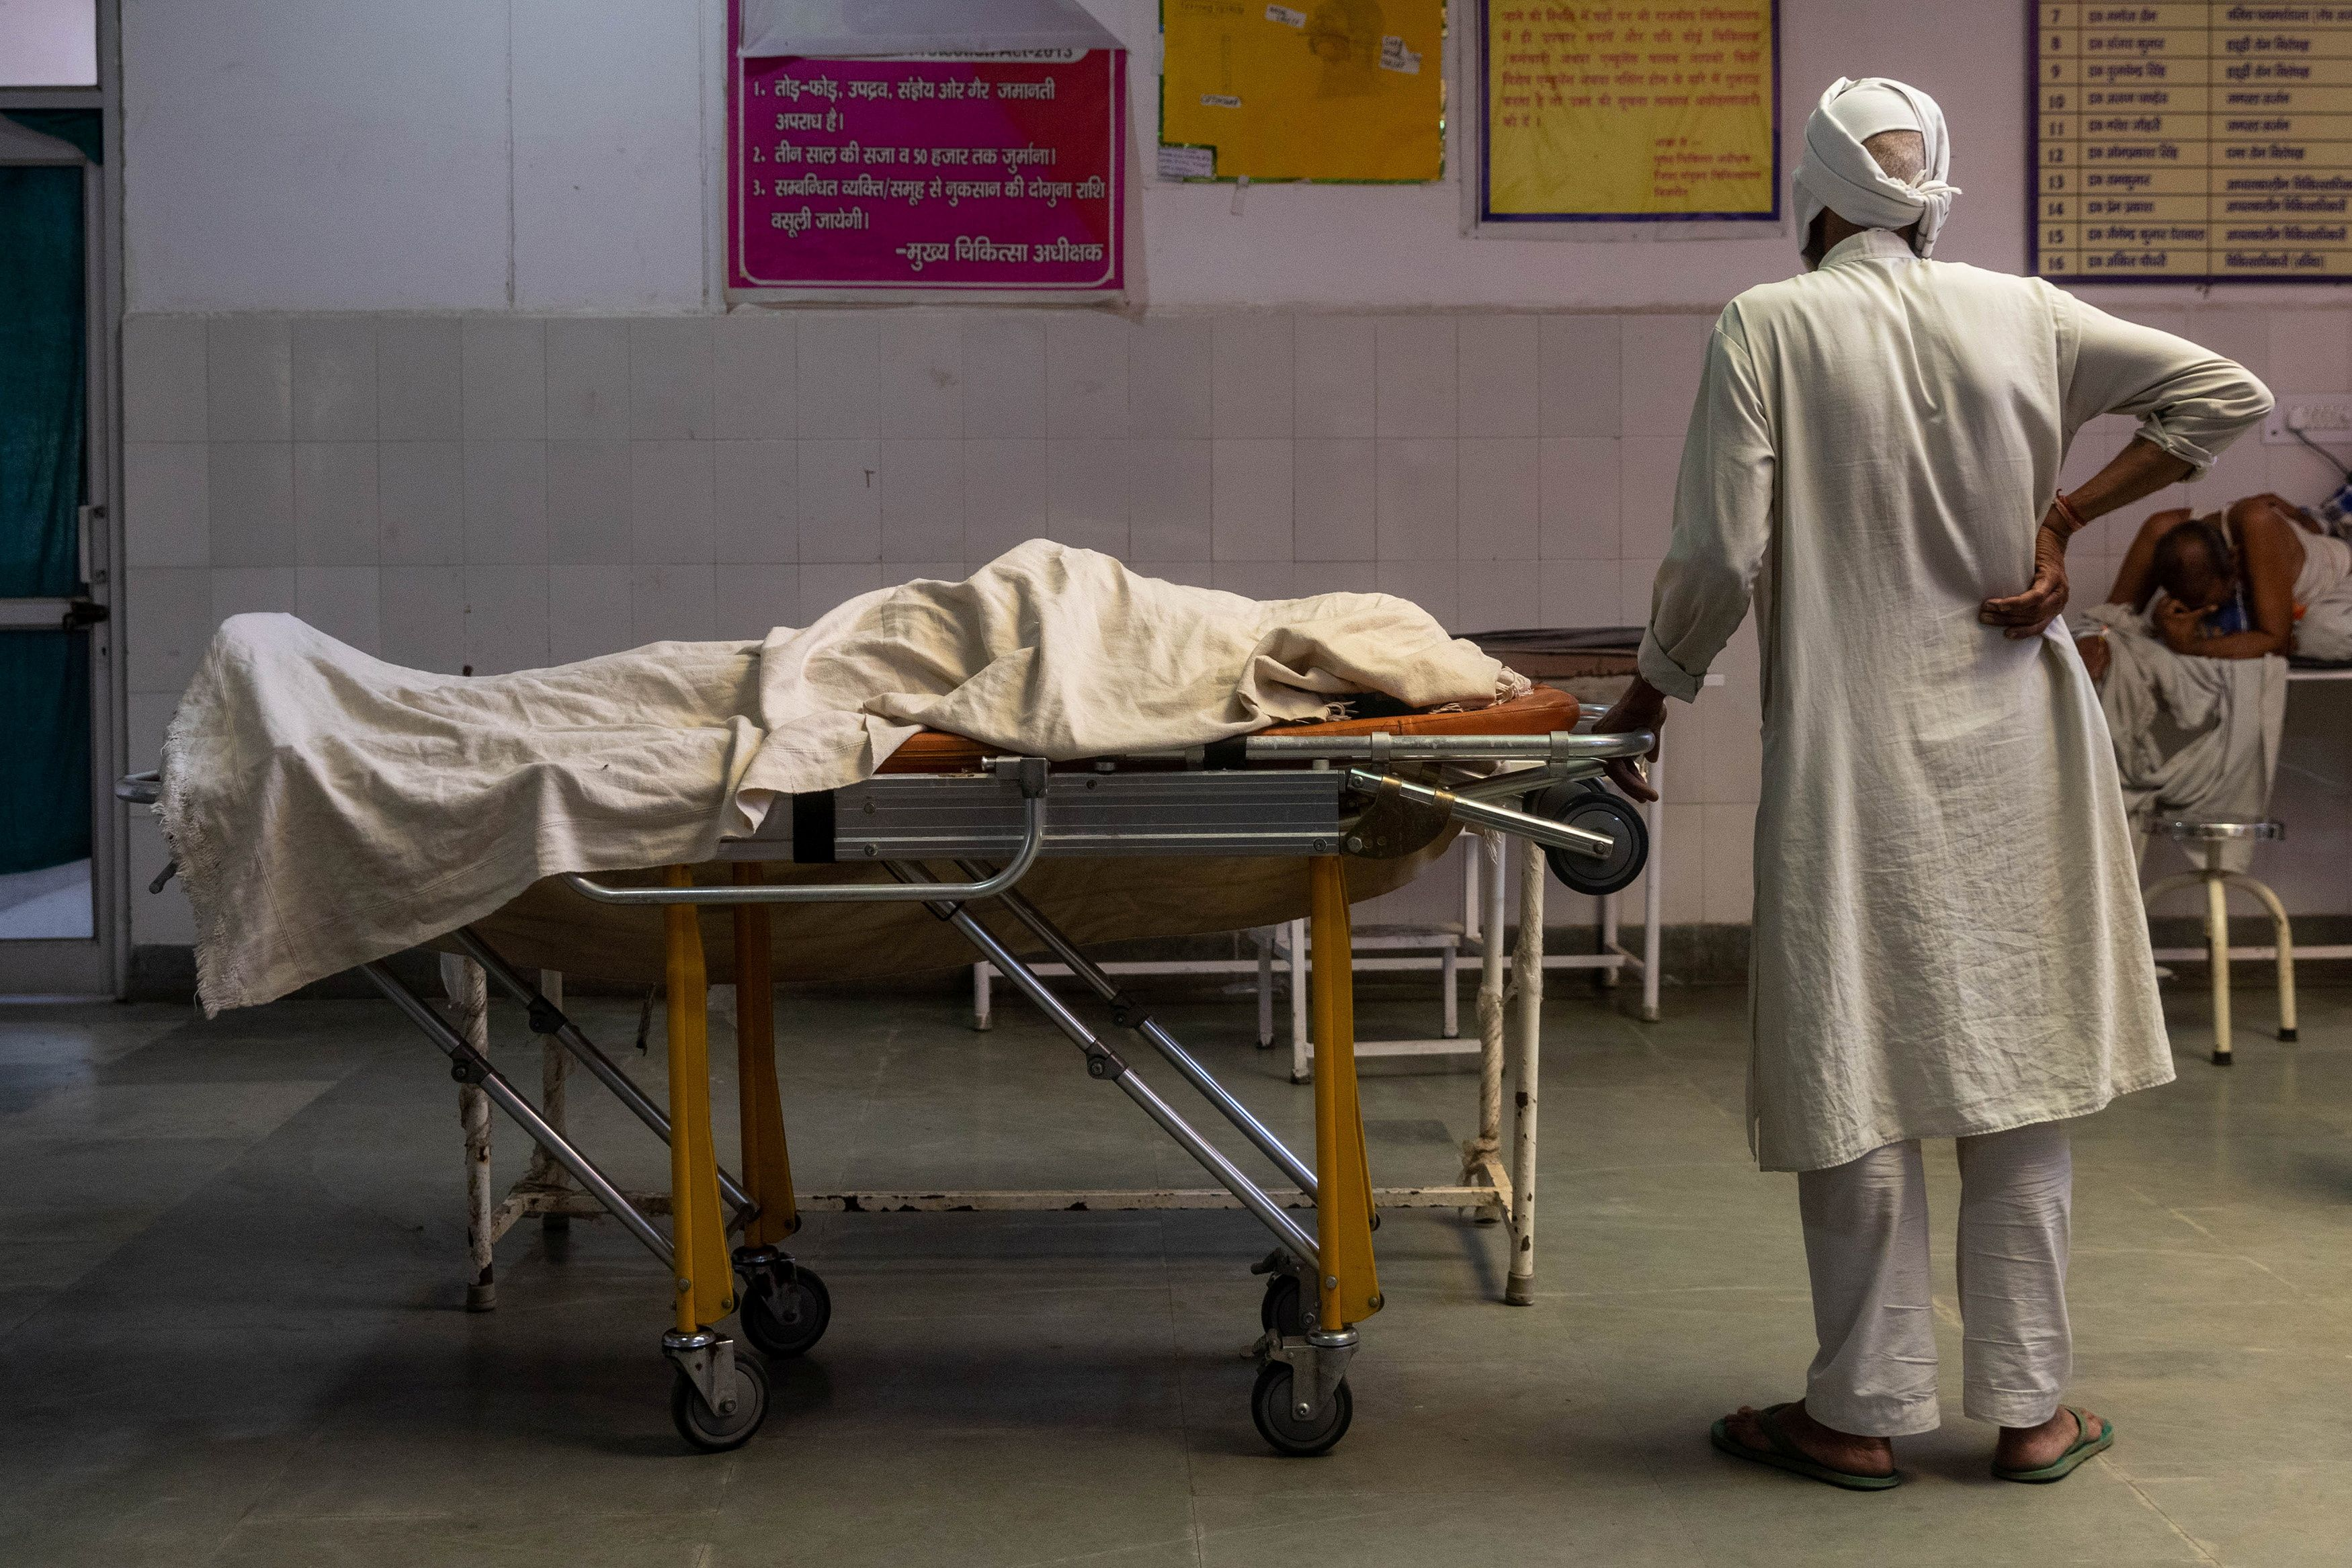 A man stands next to the body of his wife, who died due to breathing difficulties, inside an emergency ward of a government-run hospital, amidst the coronavirus disease (COVID-19) pandemic, in Bijnor, Uttar Pradesh, India, May 11, 2021. REUTERS/Danish Siddiqui